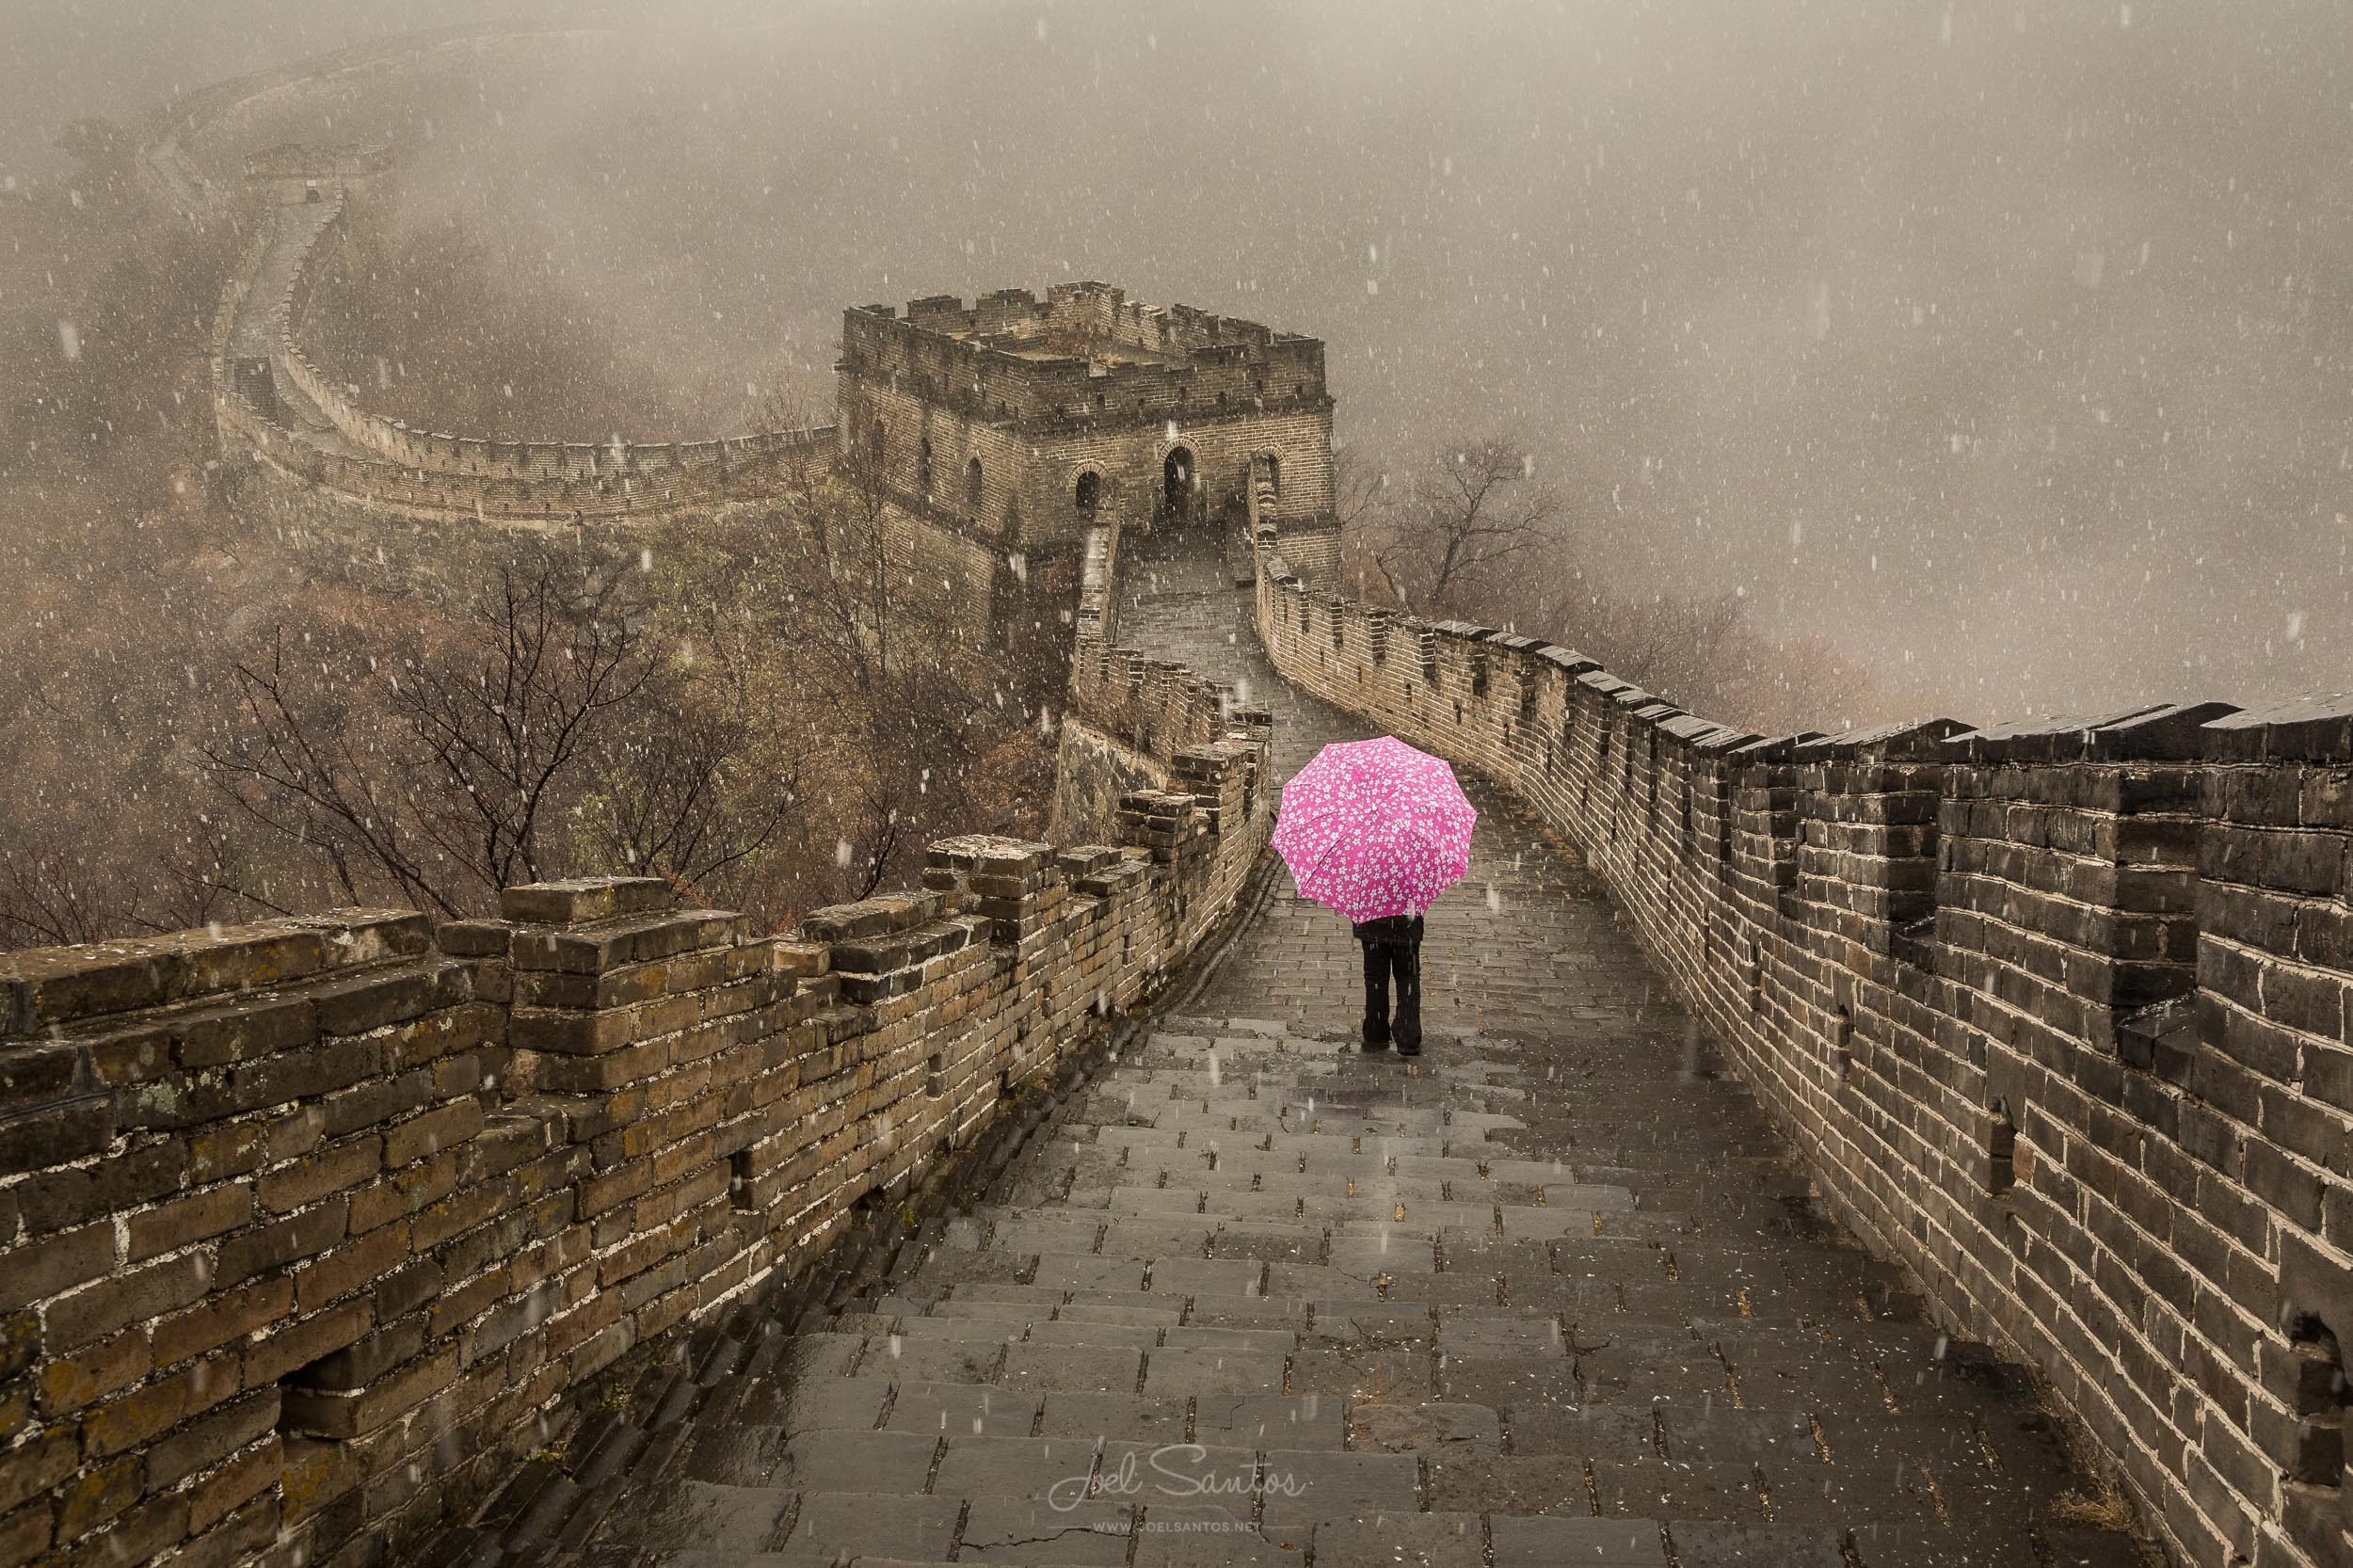 Woman with umbrella, Snow at Great Wall of China, China